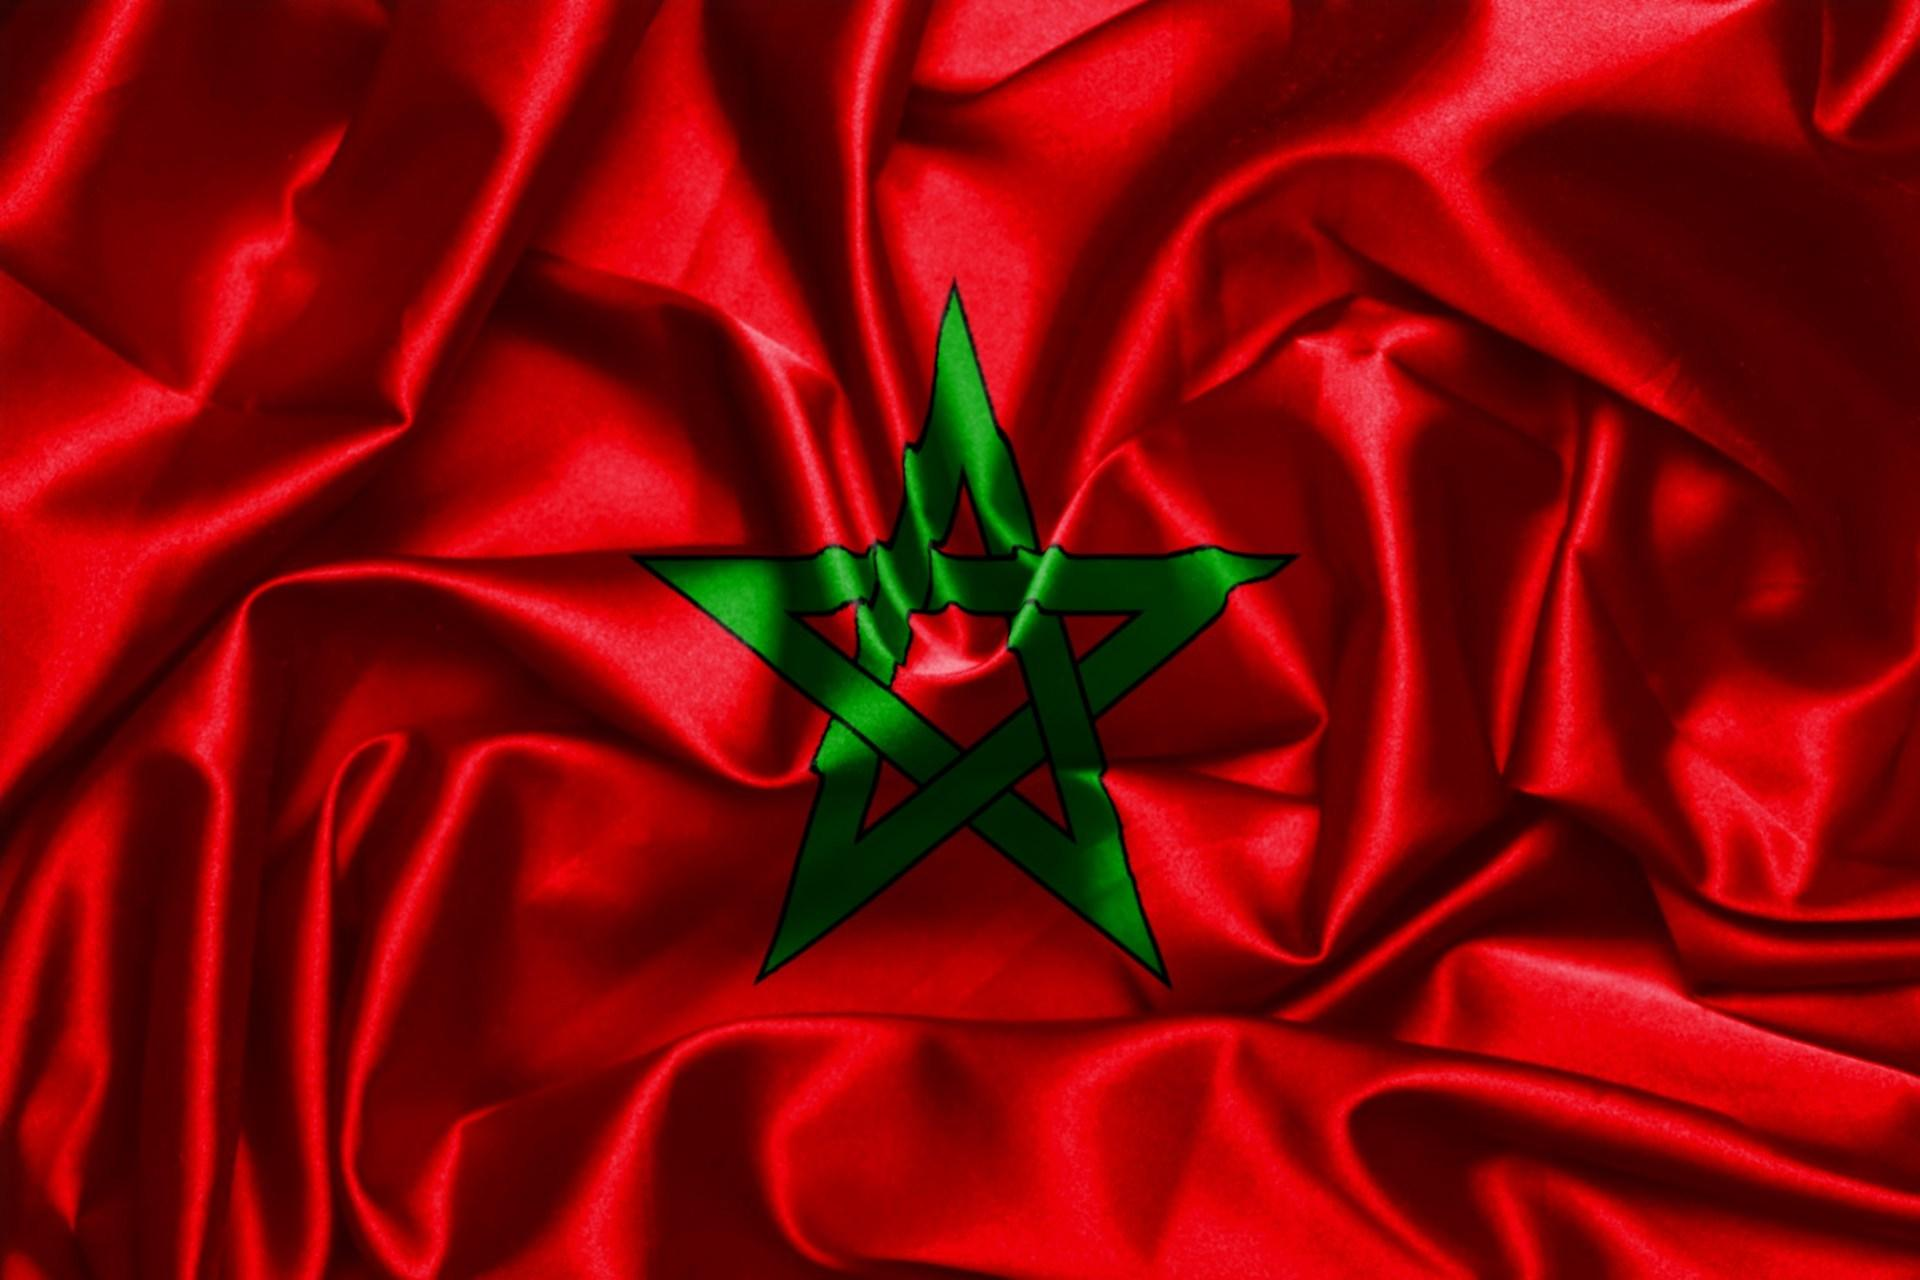 Morocco Flag hd Image & Wallpapers 2016 free download